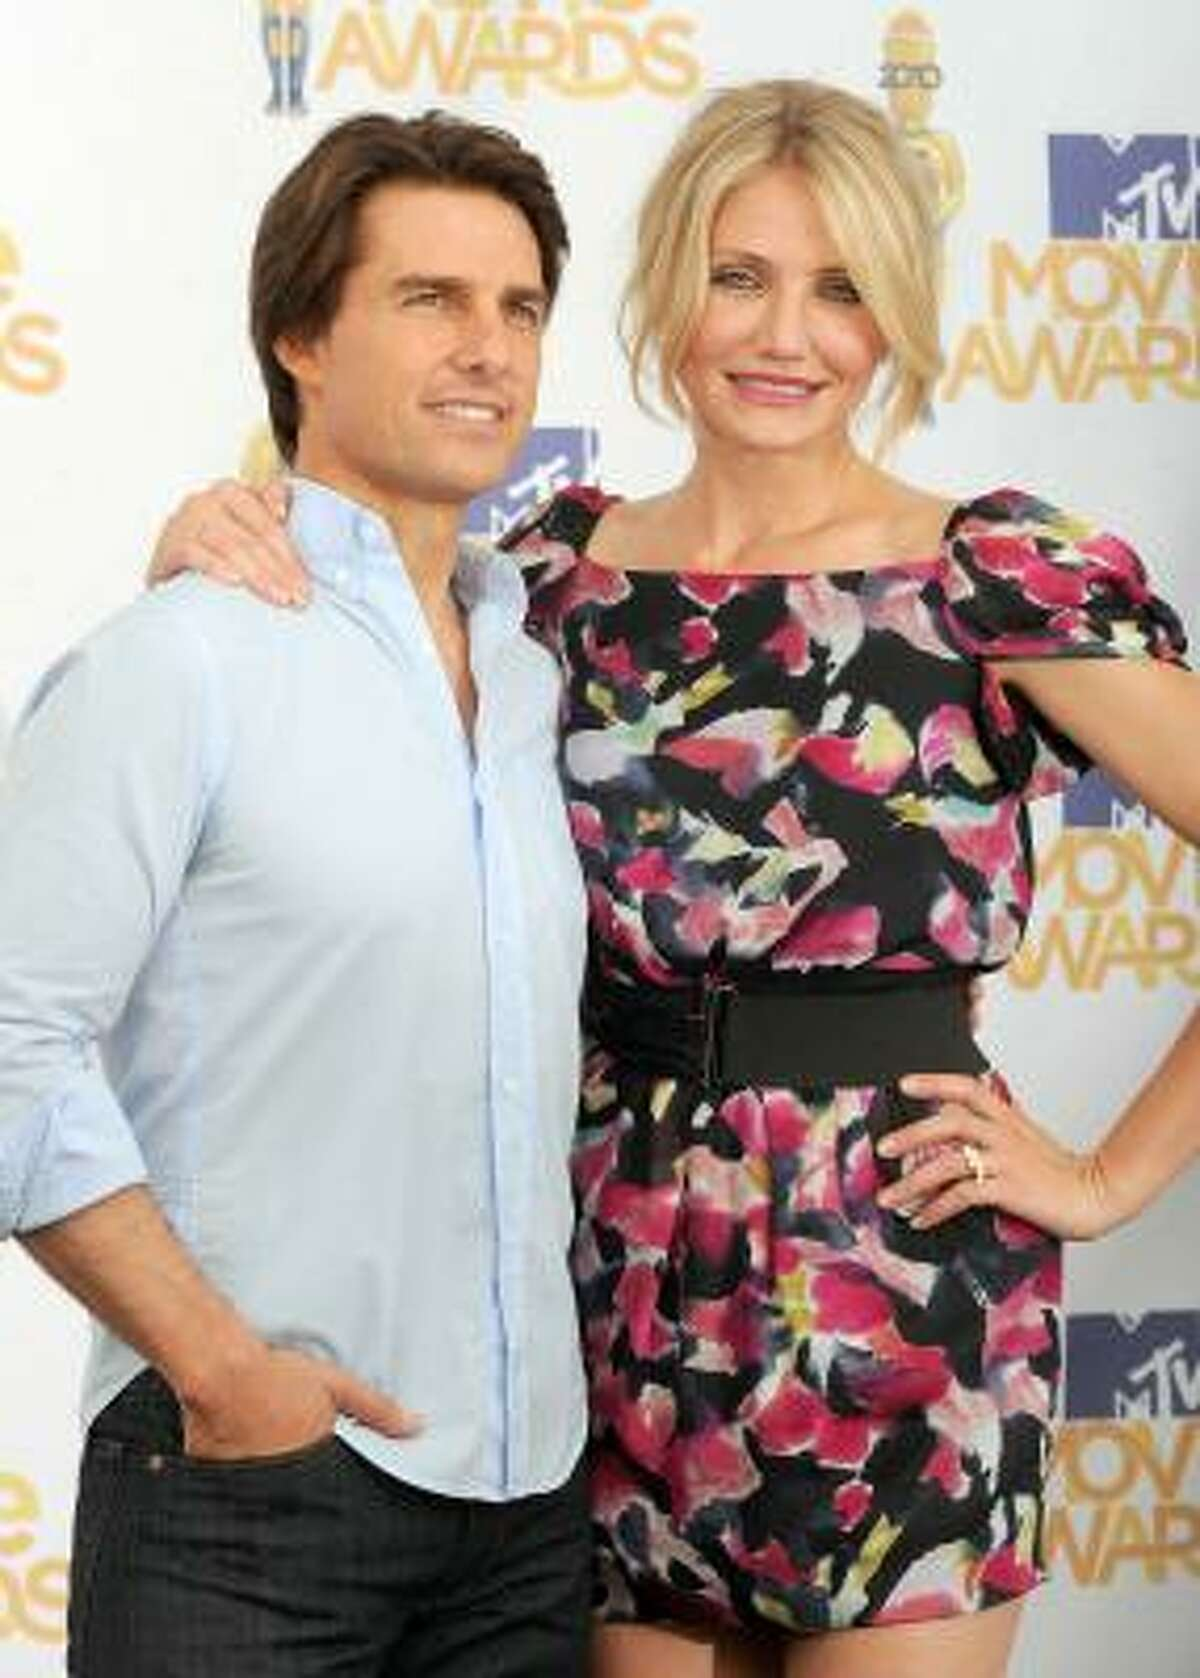 Tom Cruise's look was noticeably different performing than when he arrived earlier and took pictures with Cameron Diaz in the press room.